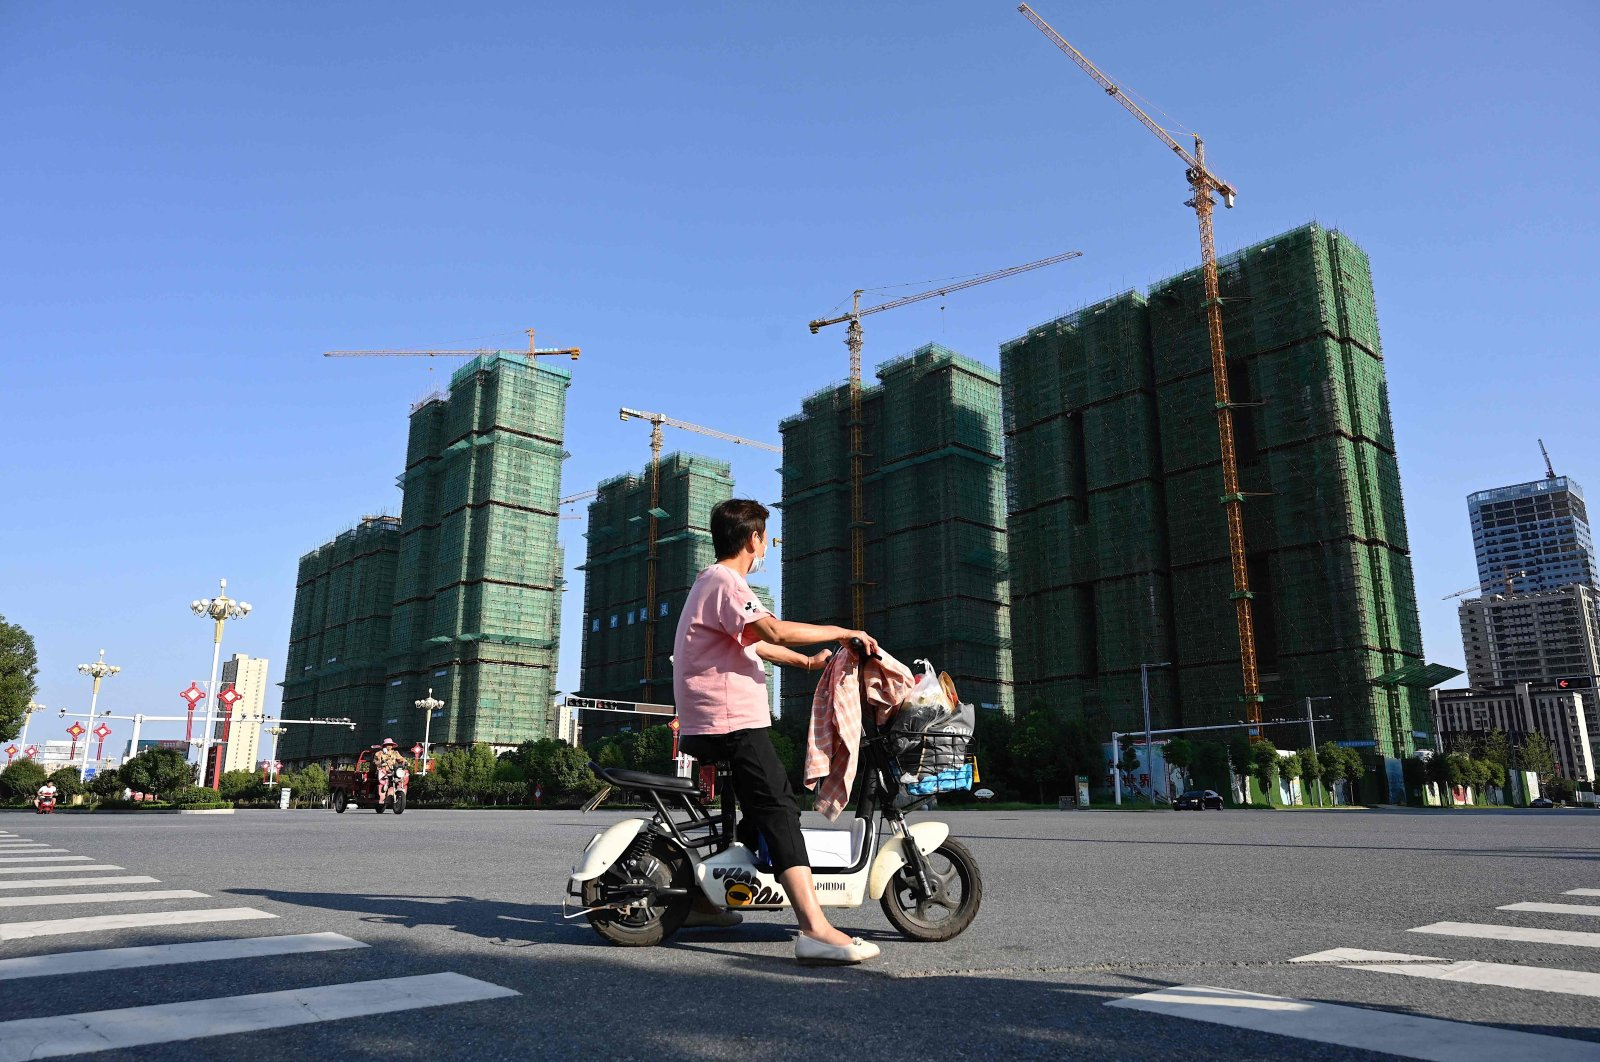 A woman rides a scooter past the construction site of an Evergrande housing complex in Zhumadian, Henan province, central China, Sept. 14, 2021. (AFP Photo)